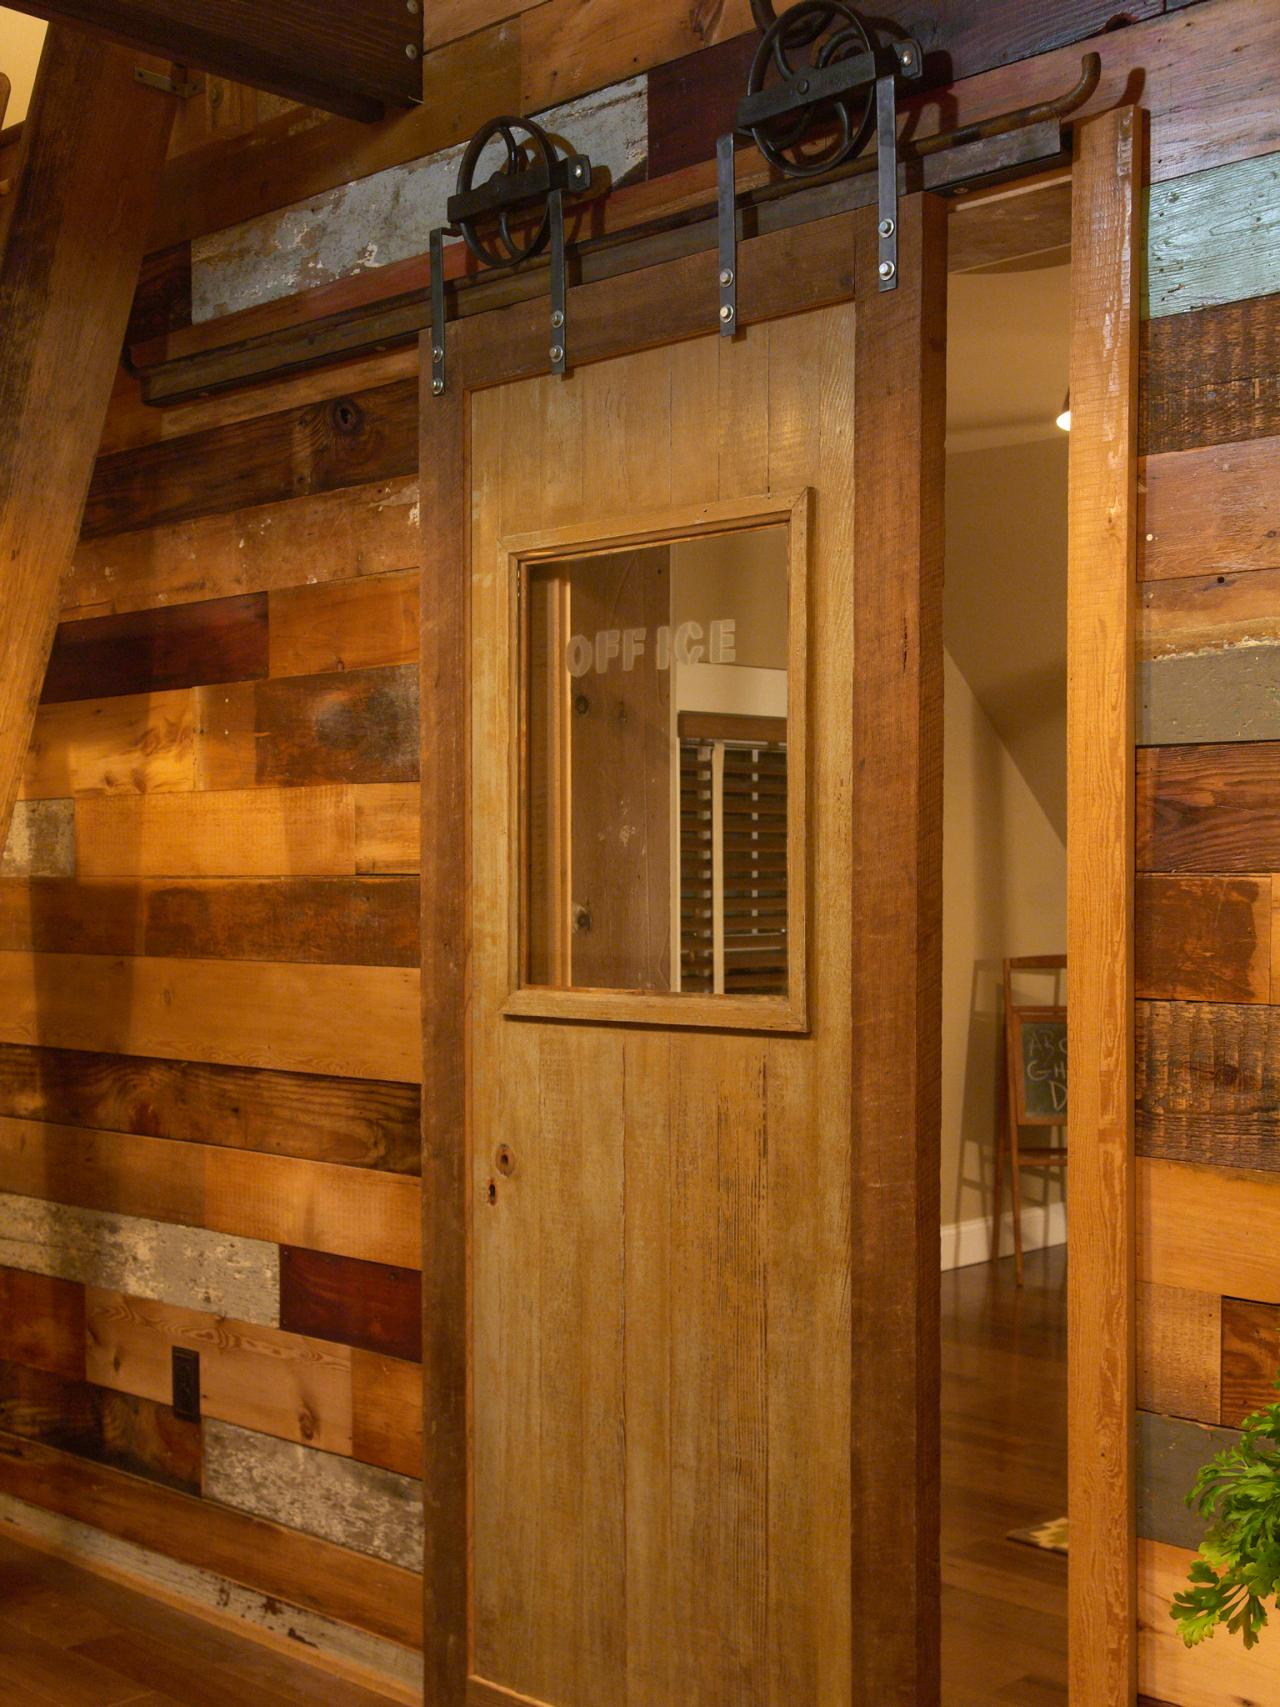 How to Make a Barn Door to Bring Countryside Nuance Inside Your Home Interior - HomesFeed